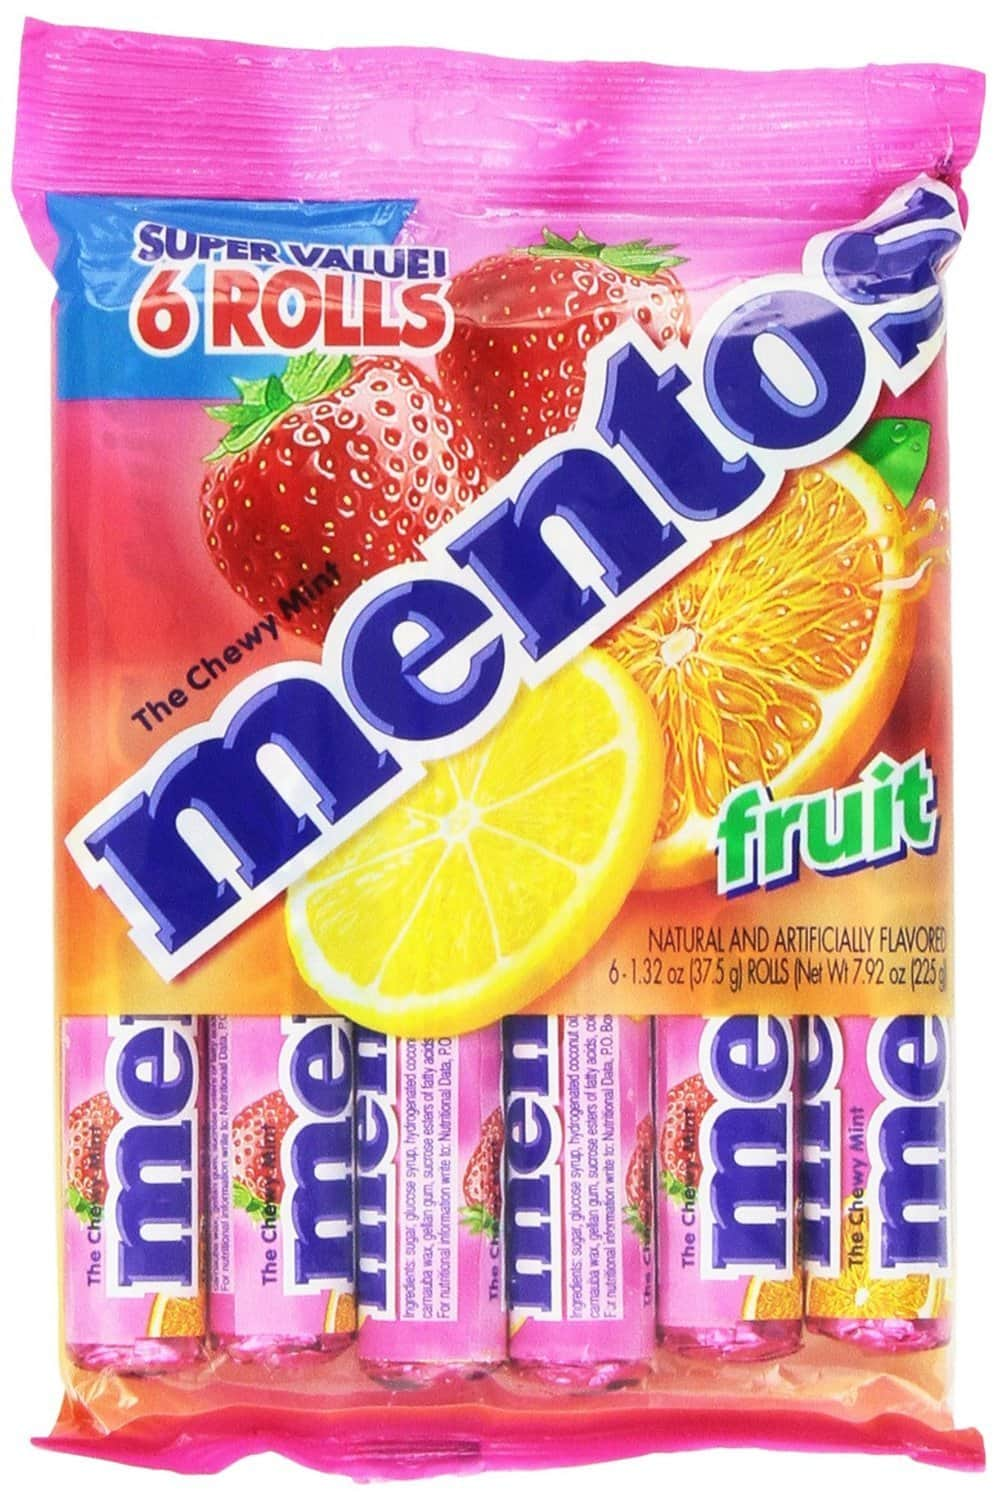 6-Pack 1.32oz Mentos Rolls (Fruit) $2.09 or 15-Pack 1.32oz Mentos Rolls (Mint) $5.18 + Free Shipping